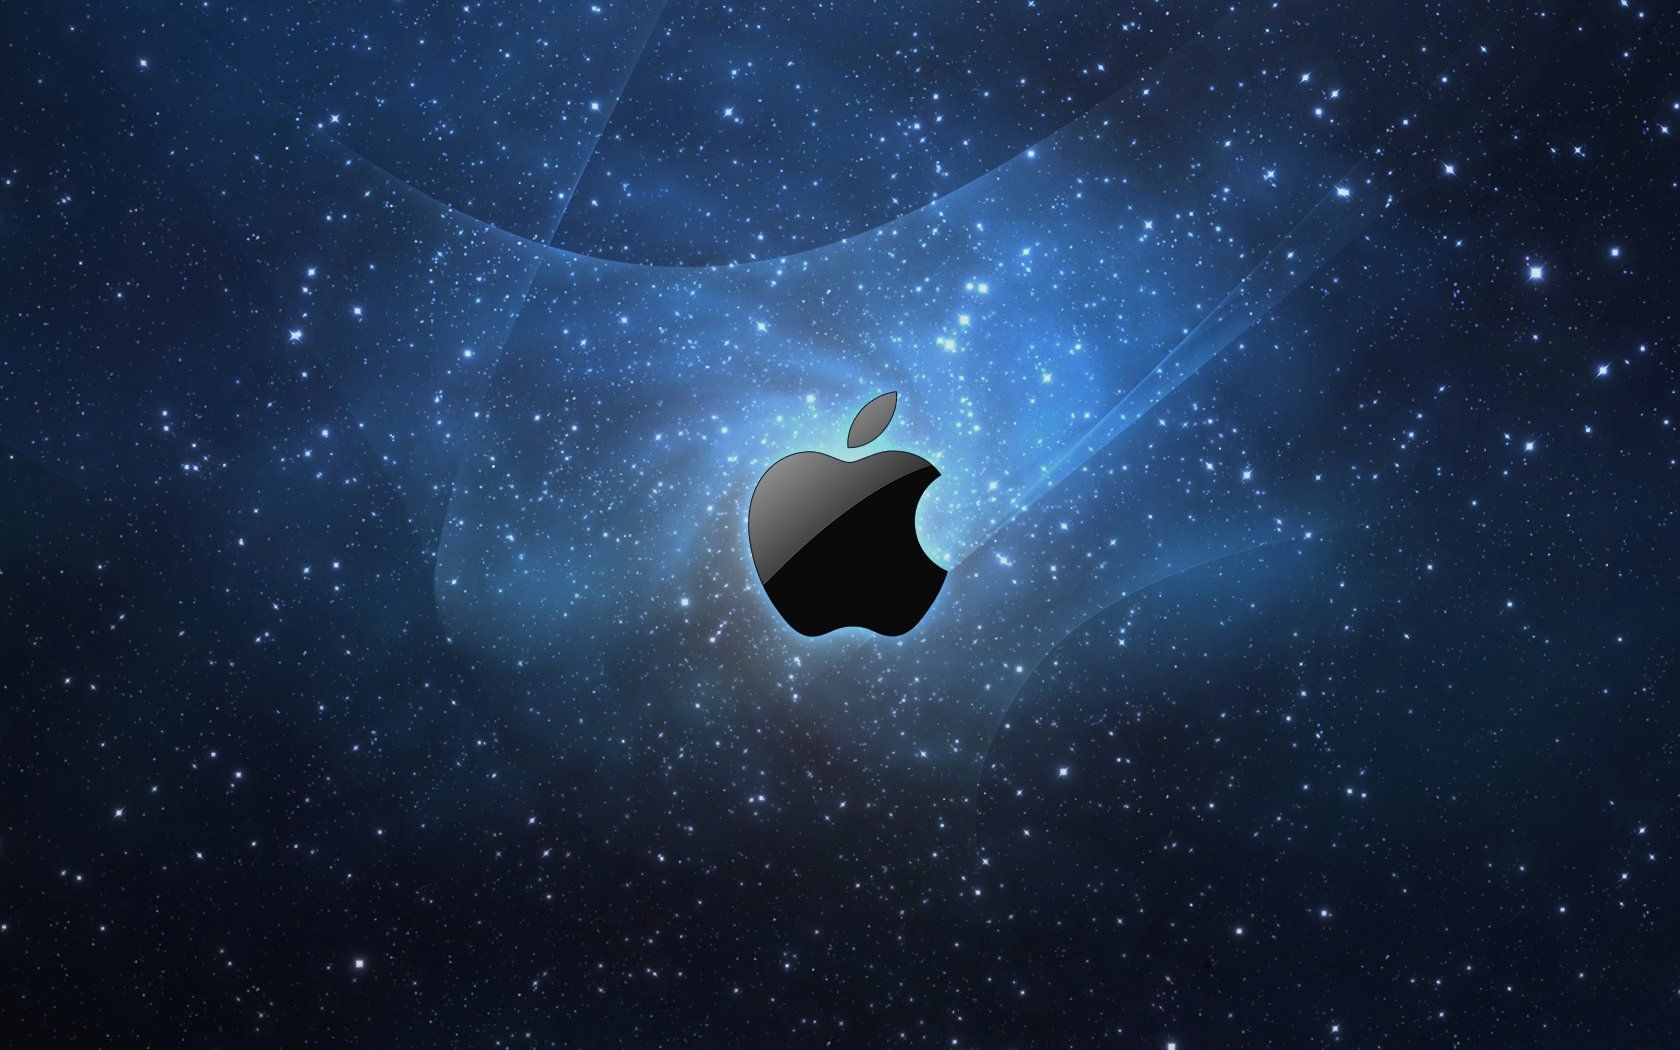 macbook pro wallpapers wallpaper | wallpaper backgrounds | pinterest